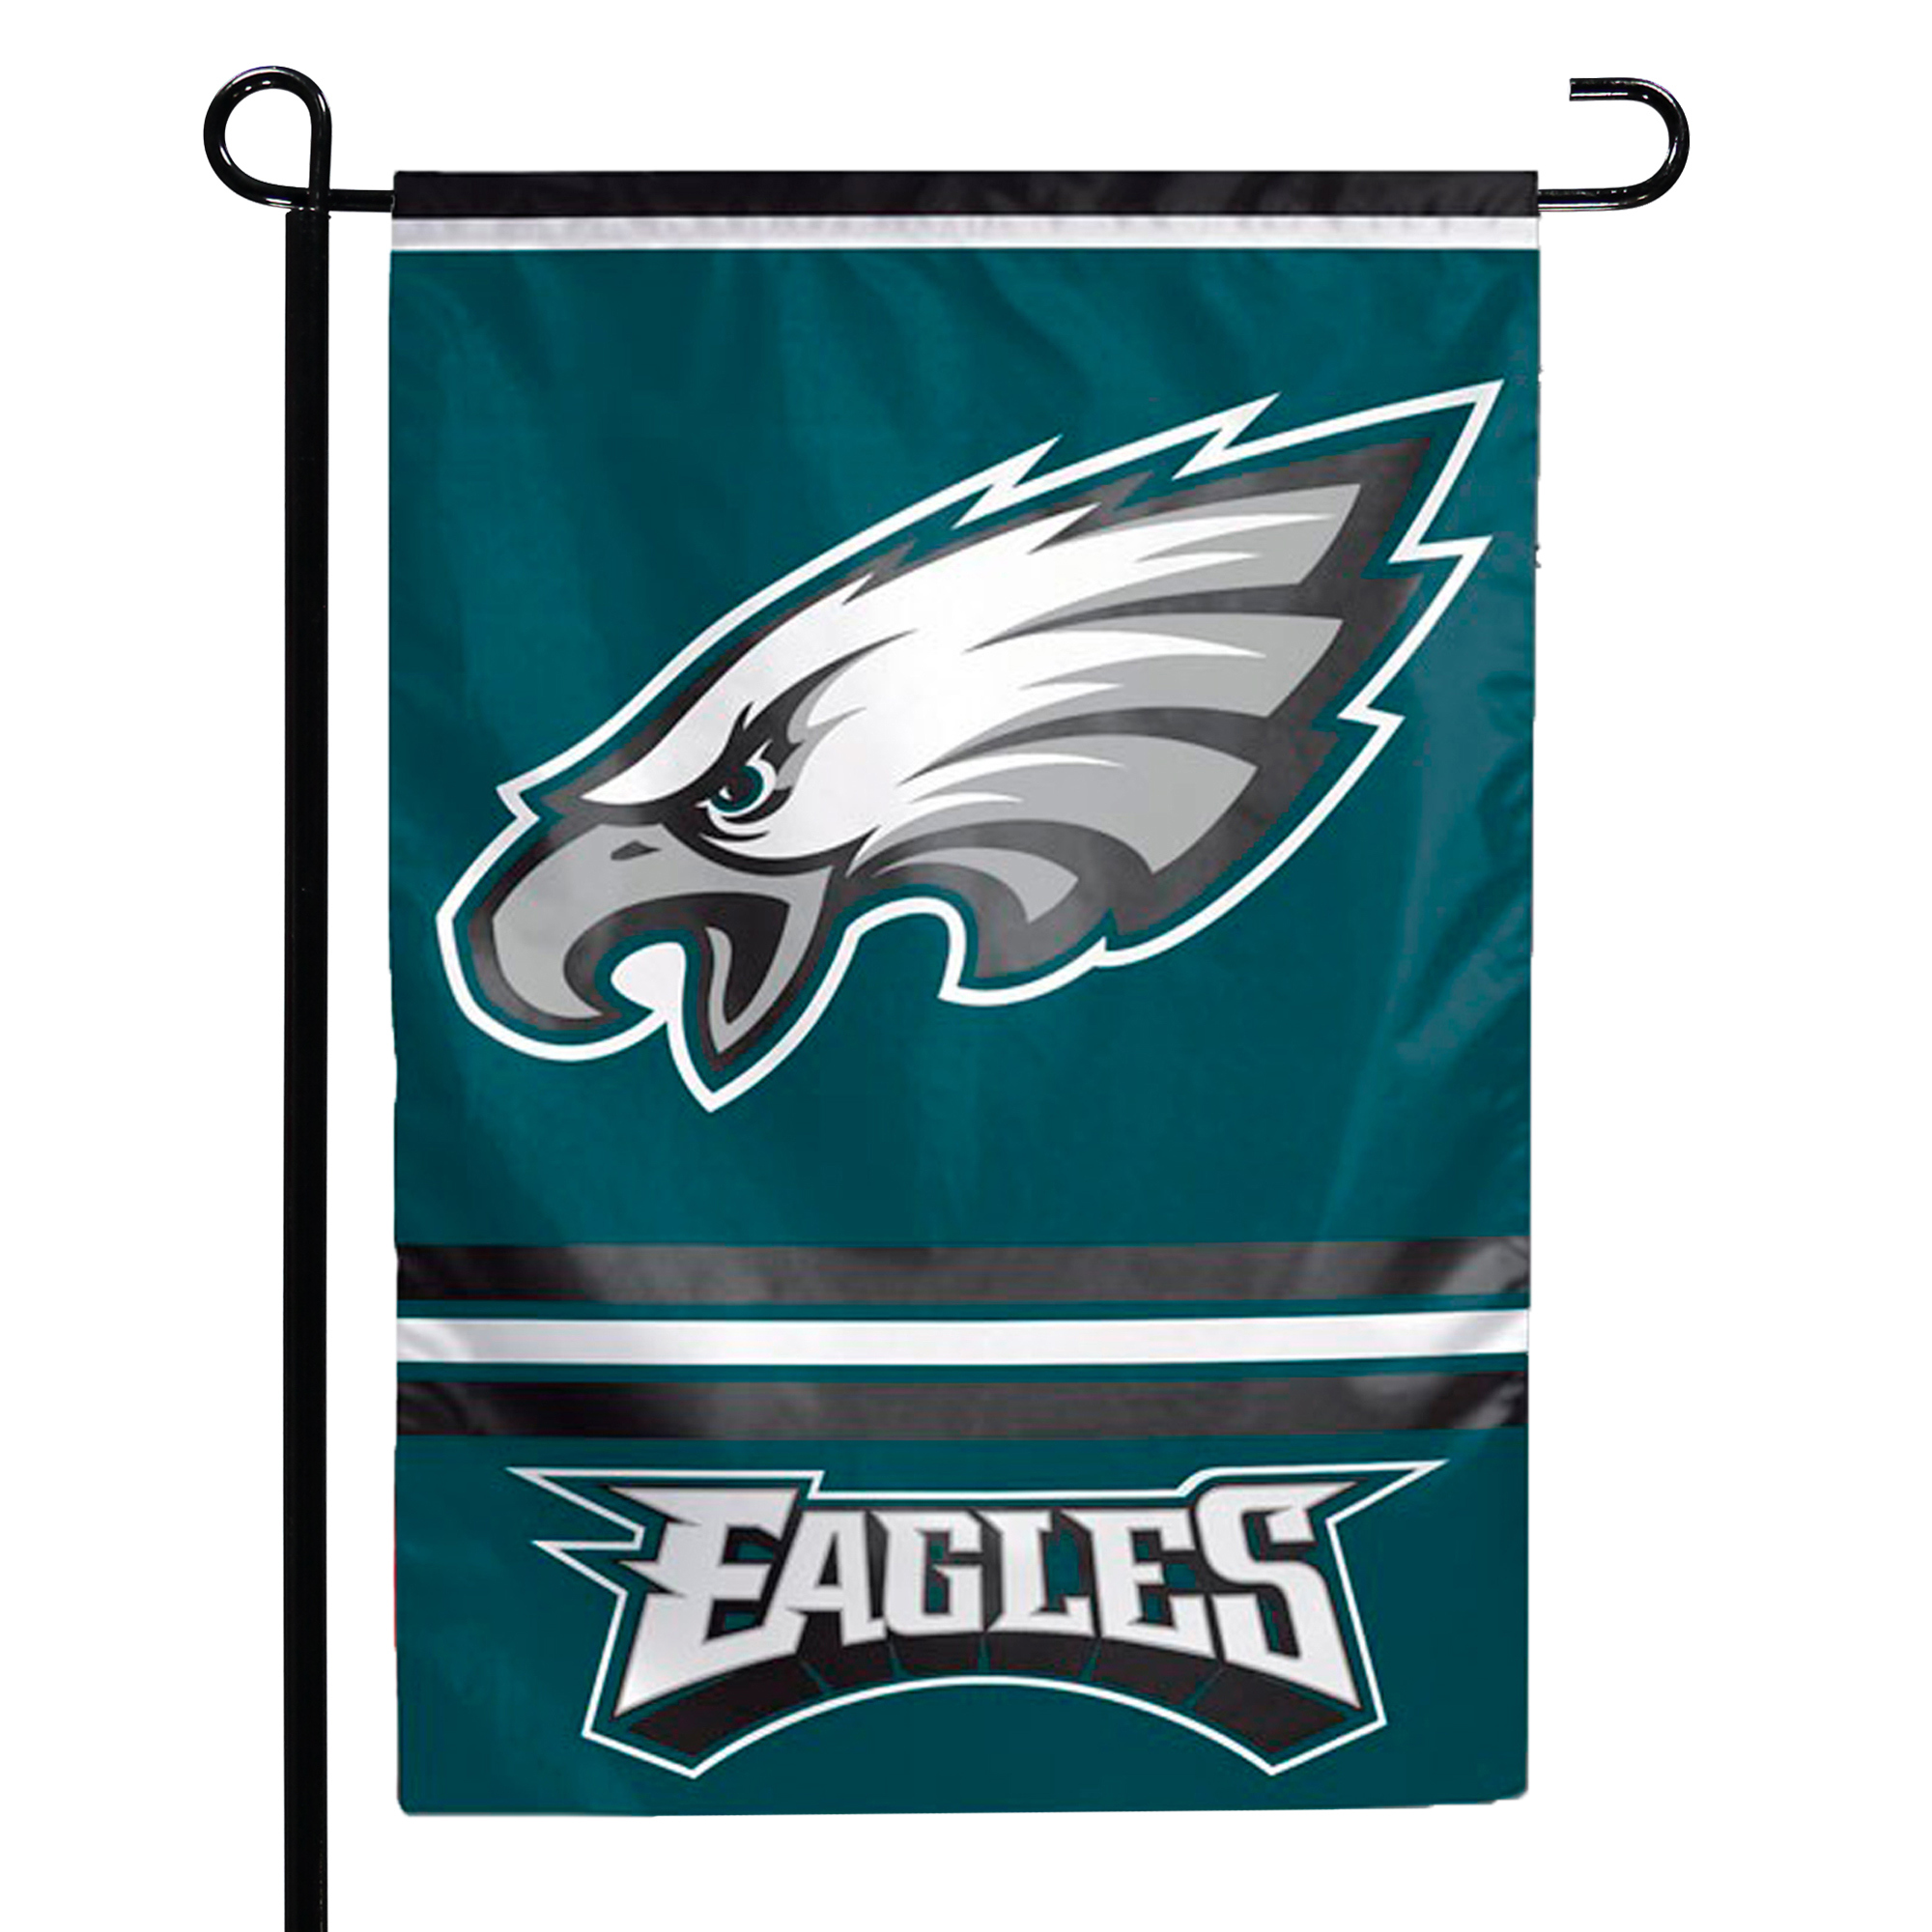 "Philadelphia Eagles WinCraft 12"" x 18"" Double-Sided Garden Flag - No Size"